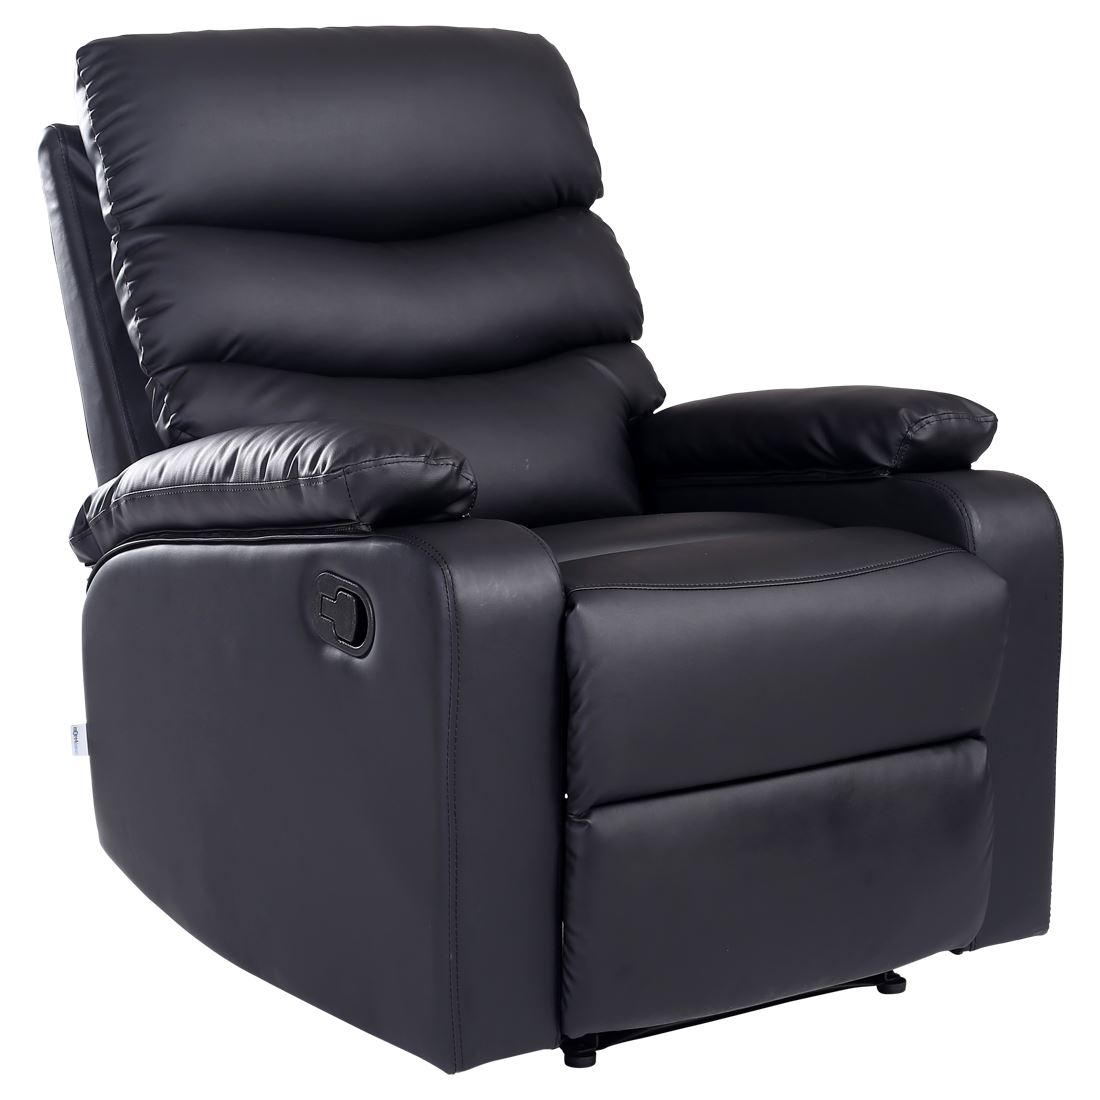 about ashby leather recliner armchair sofa home lounge chair reclining